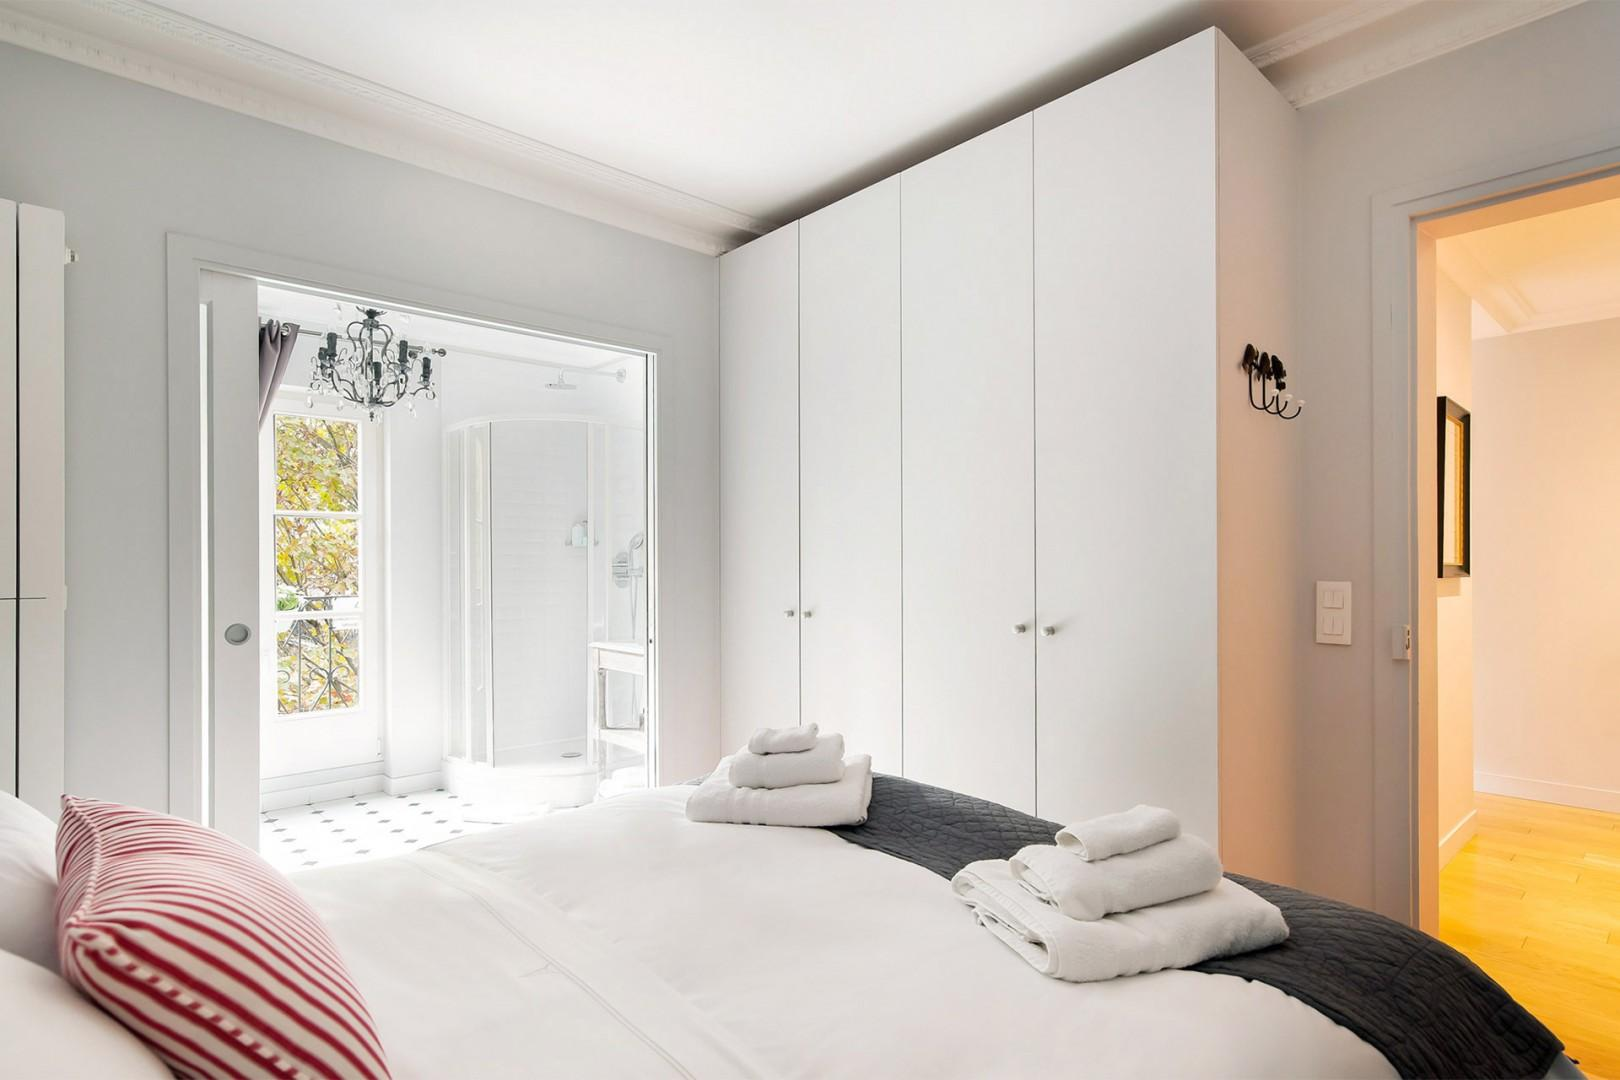 Take advantage of the large built-in closets to store your belongings.